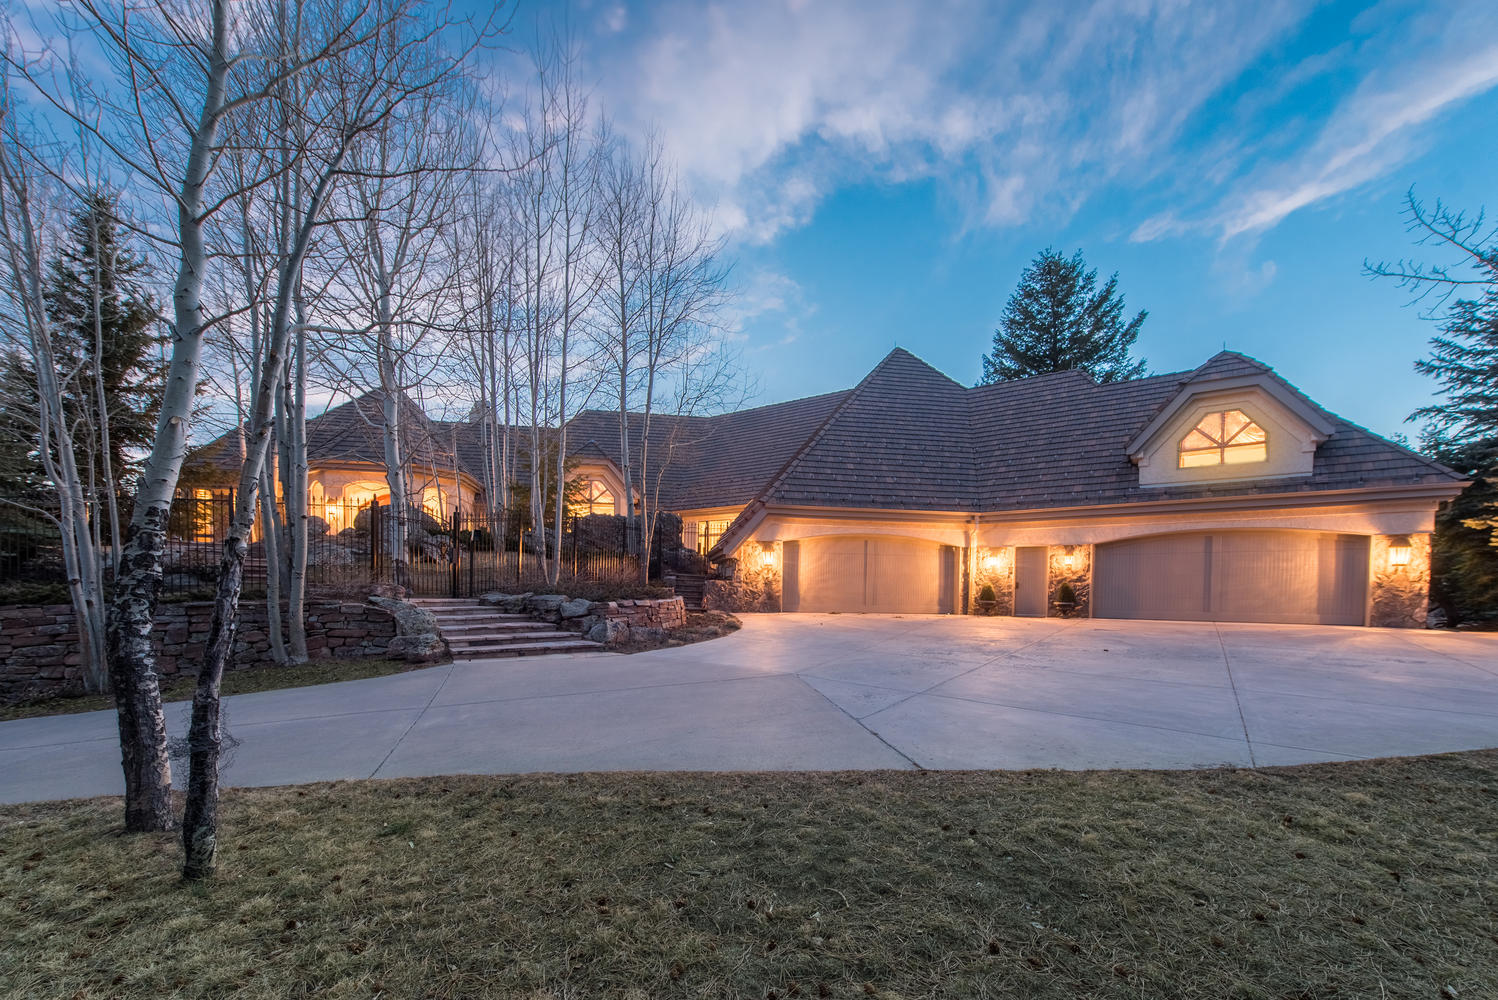 Maison unifamiliale pour l Vente à Majestic Masterpiece designed by renowned Sears Barrett Architects 31135 Skokie Lane Evergreen, Colorado, 80439 États-Unis